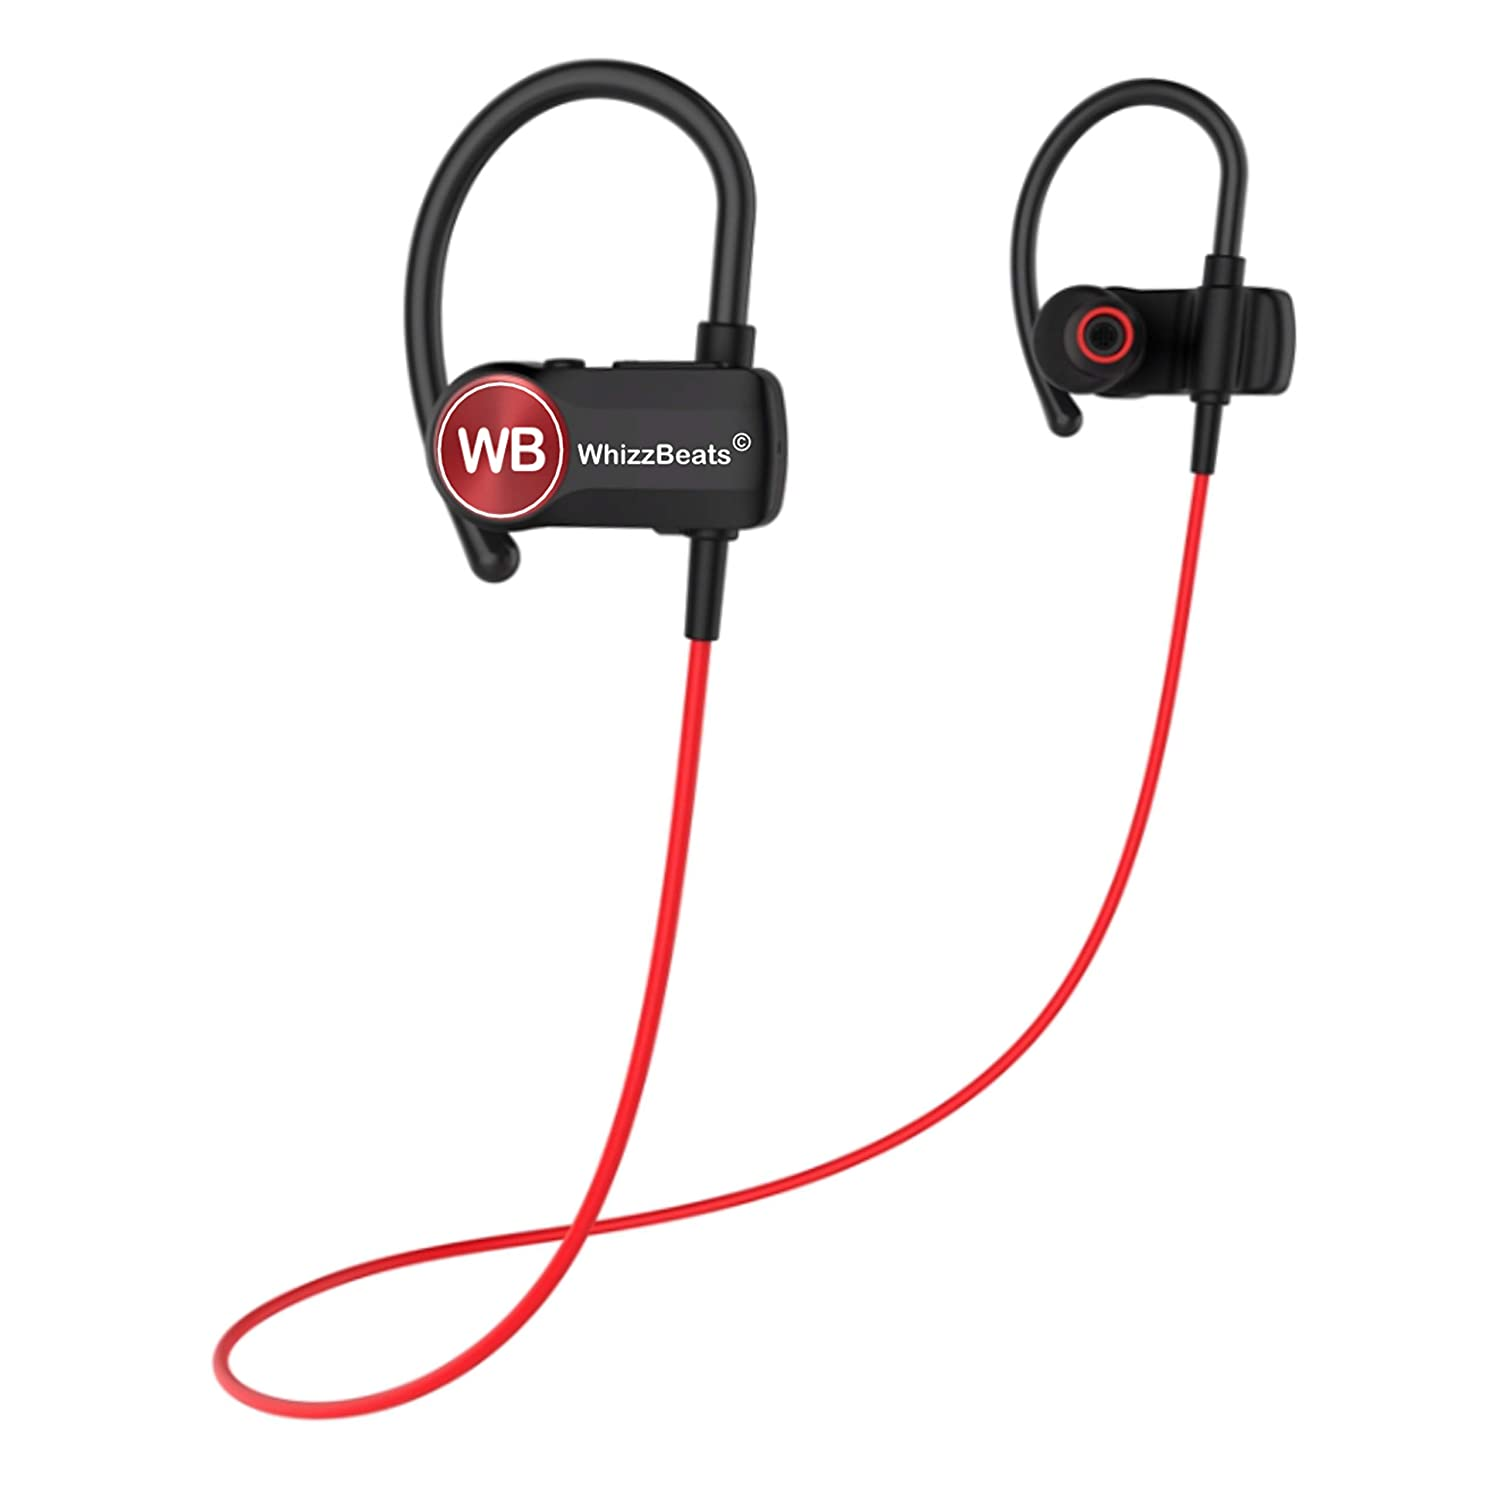 WhizzBeats Bluetooth Headphones IPX7 Waterproof, Wireless Sport Earbuds Bluetooth 4.1, Richer Base, HD Stereo Earphones w Mic, 9-11 Hrs Playback Noise Cancelling Headsets for Workout, Running, Gym